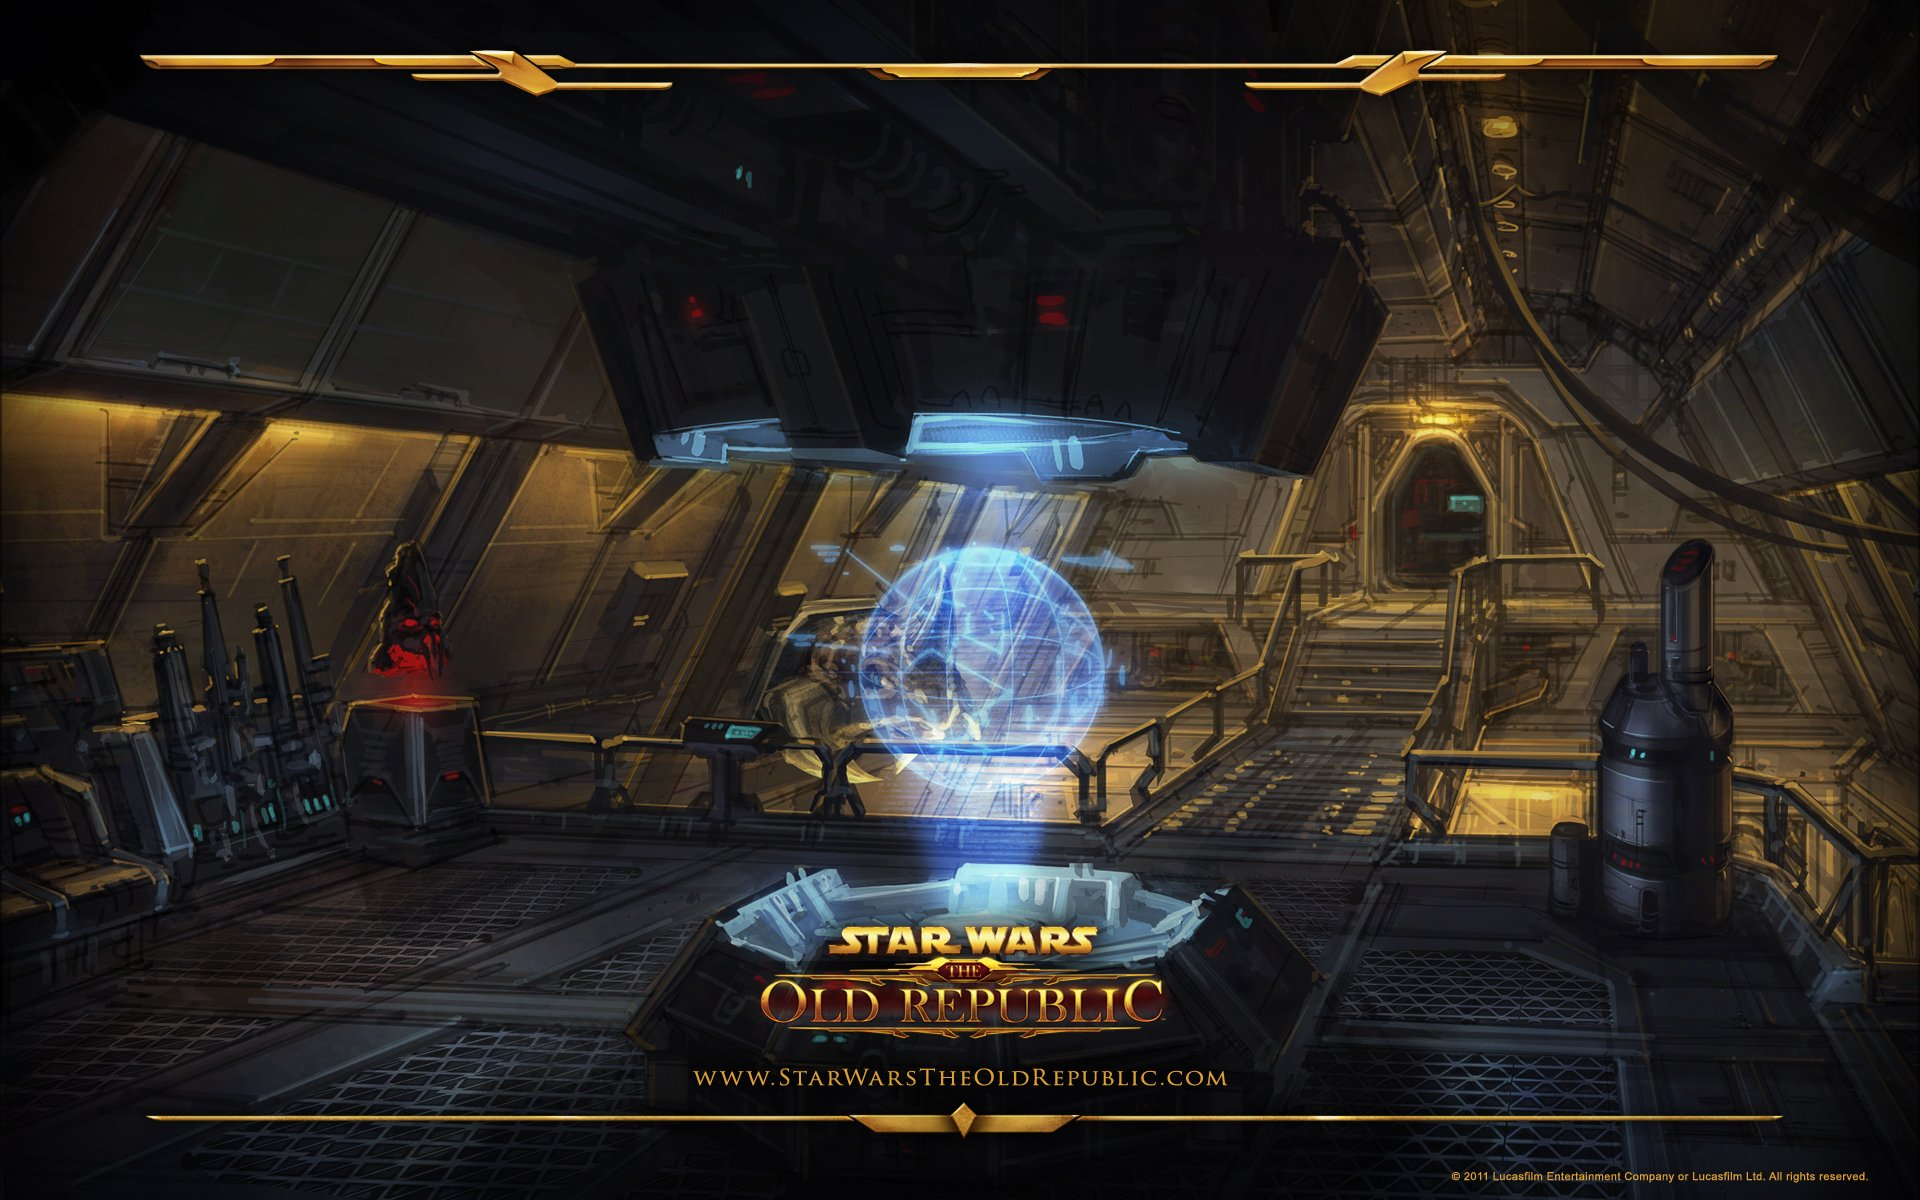 Star Wars Old Republic Pictures Game Backgrounds Swtor Star Wars